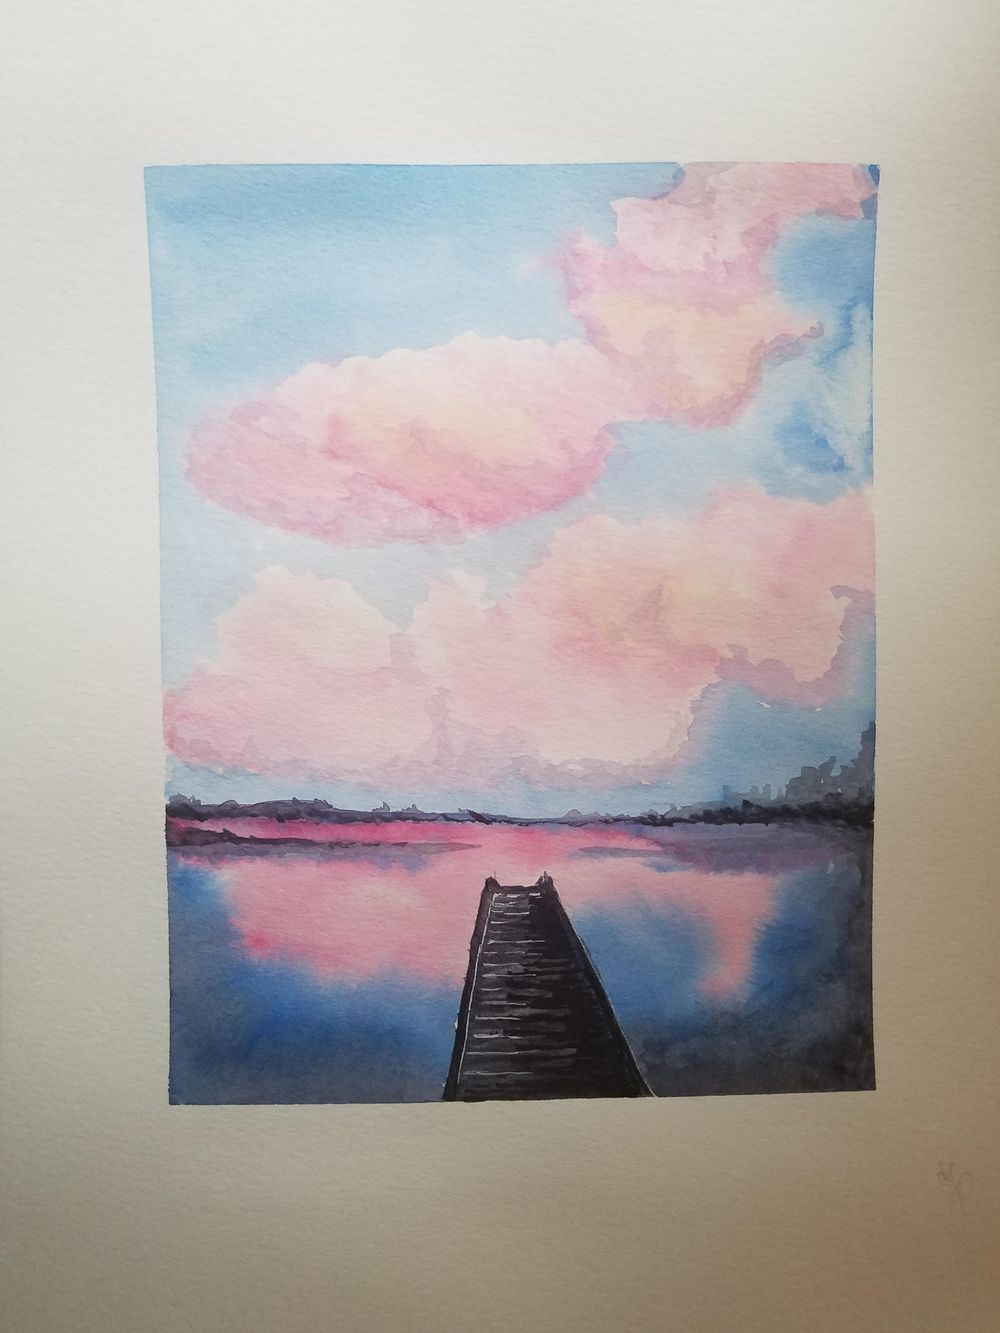 clouds - image 1 - student project